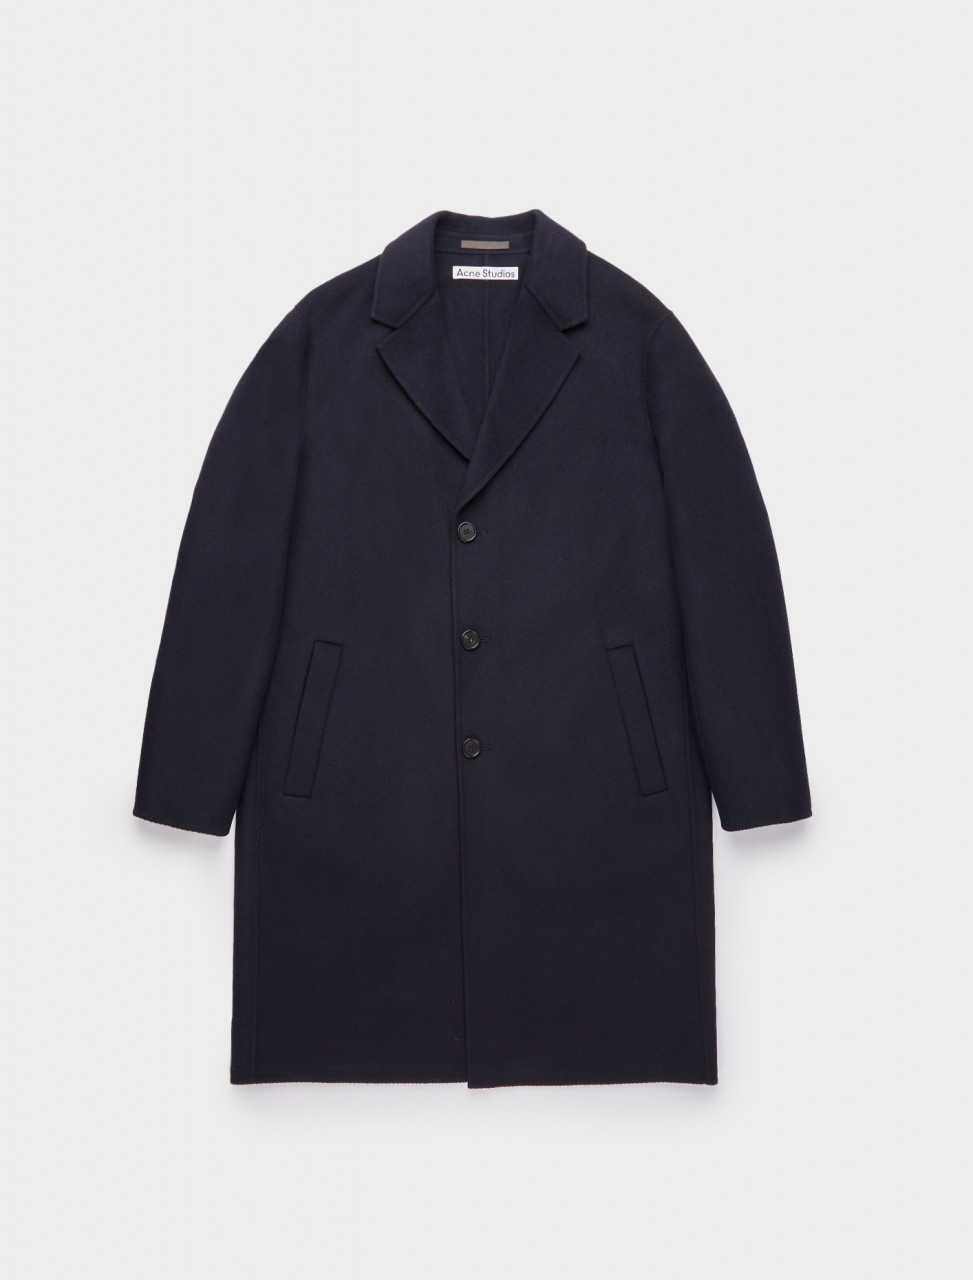 110-B90432-BG3 ACNE STUDIOS Wool Twill Overcoat in Navy